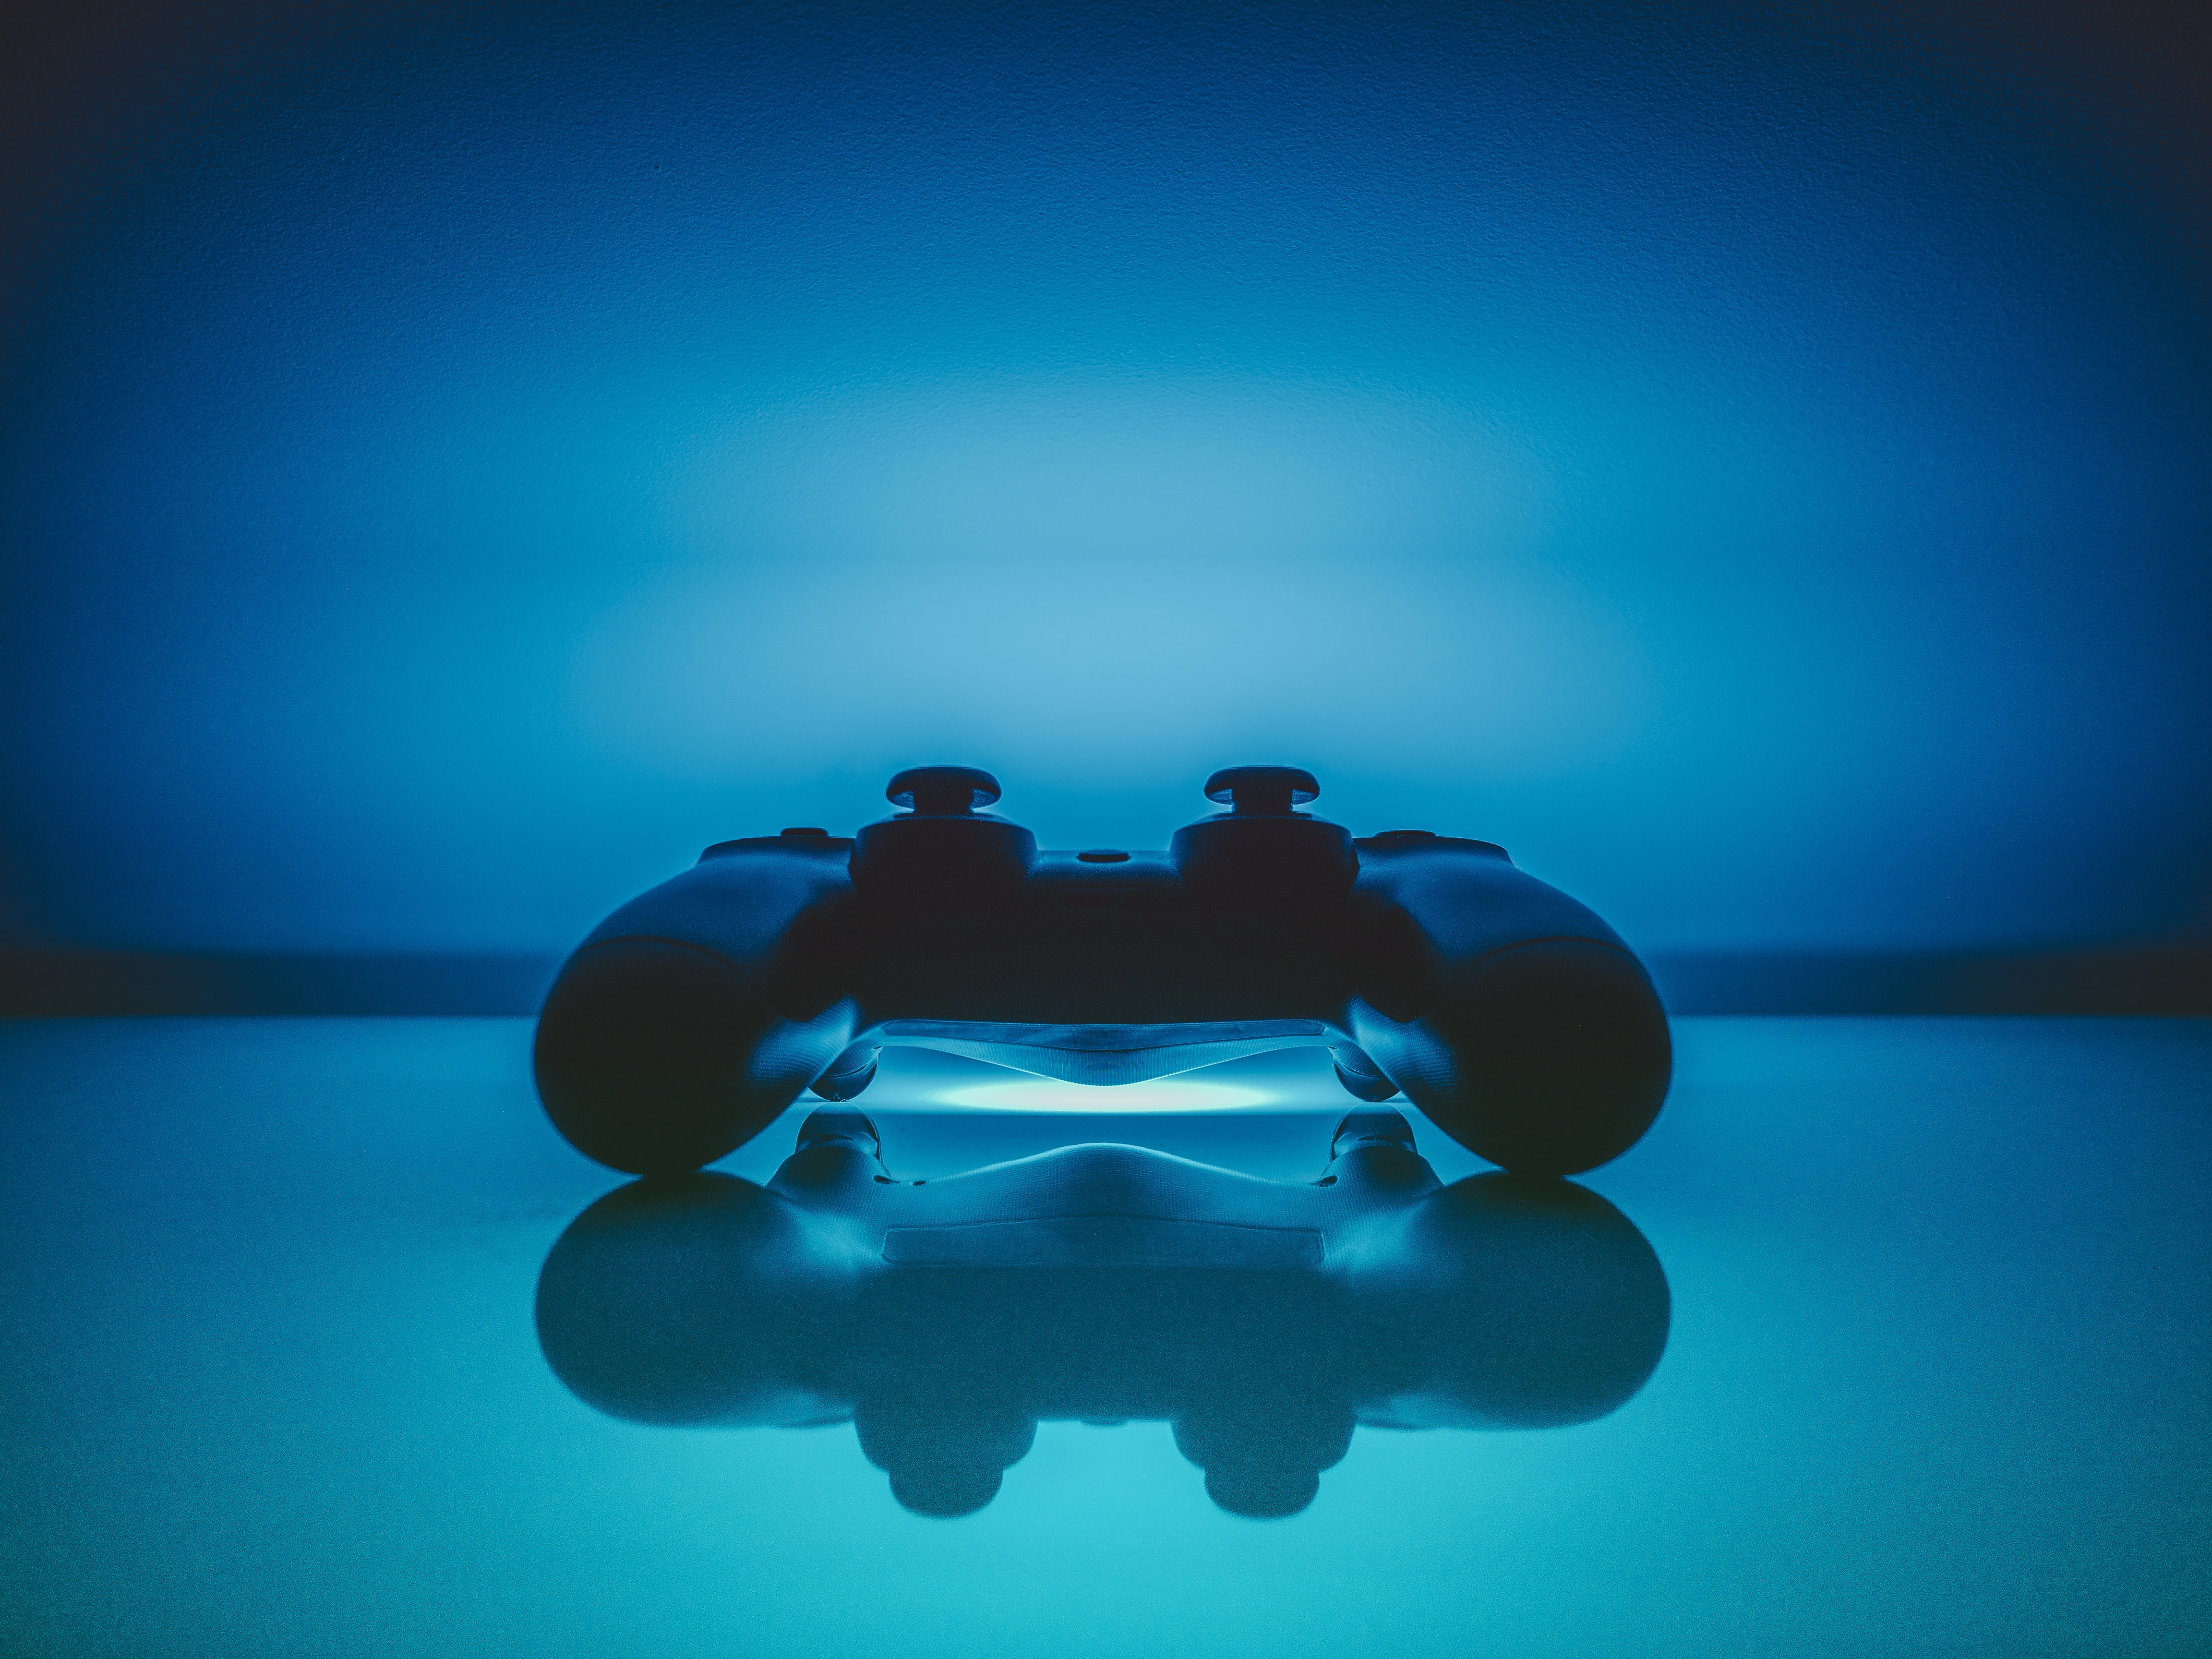 101382 download wallpaper Technology, Joystick, Technologies, Controller, Gamepad screensavers and pictures for free